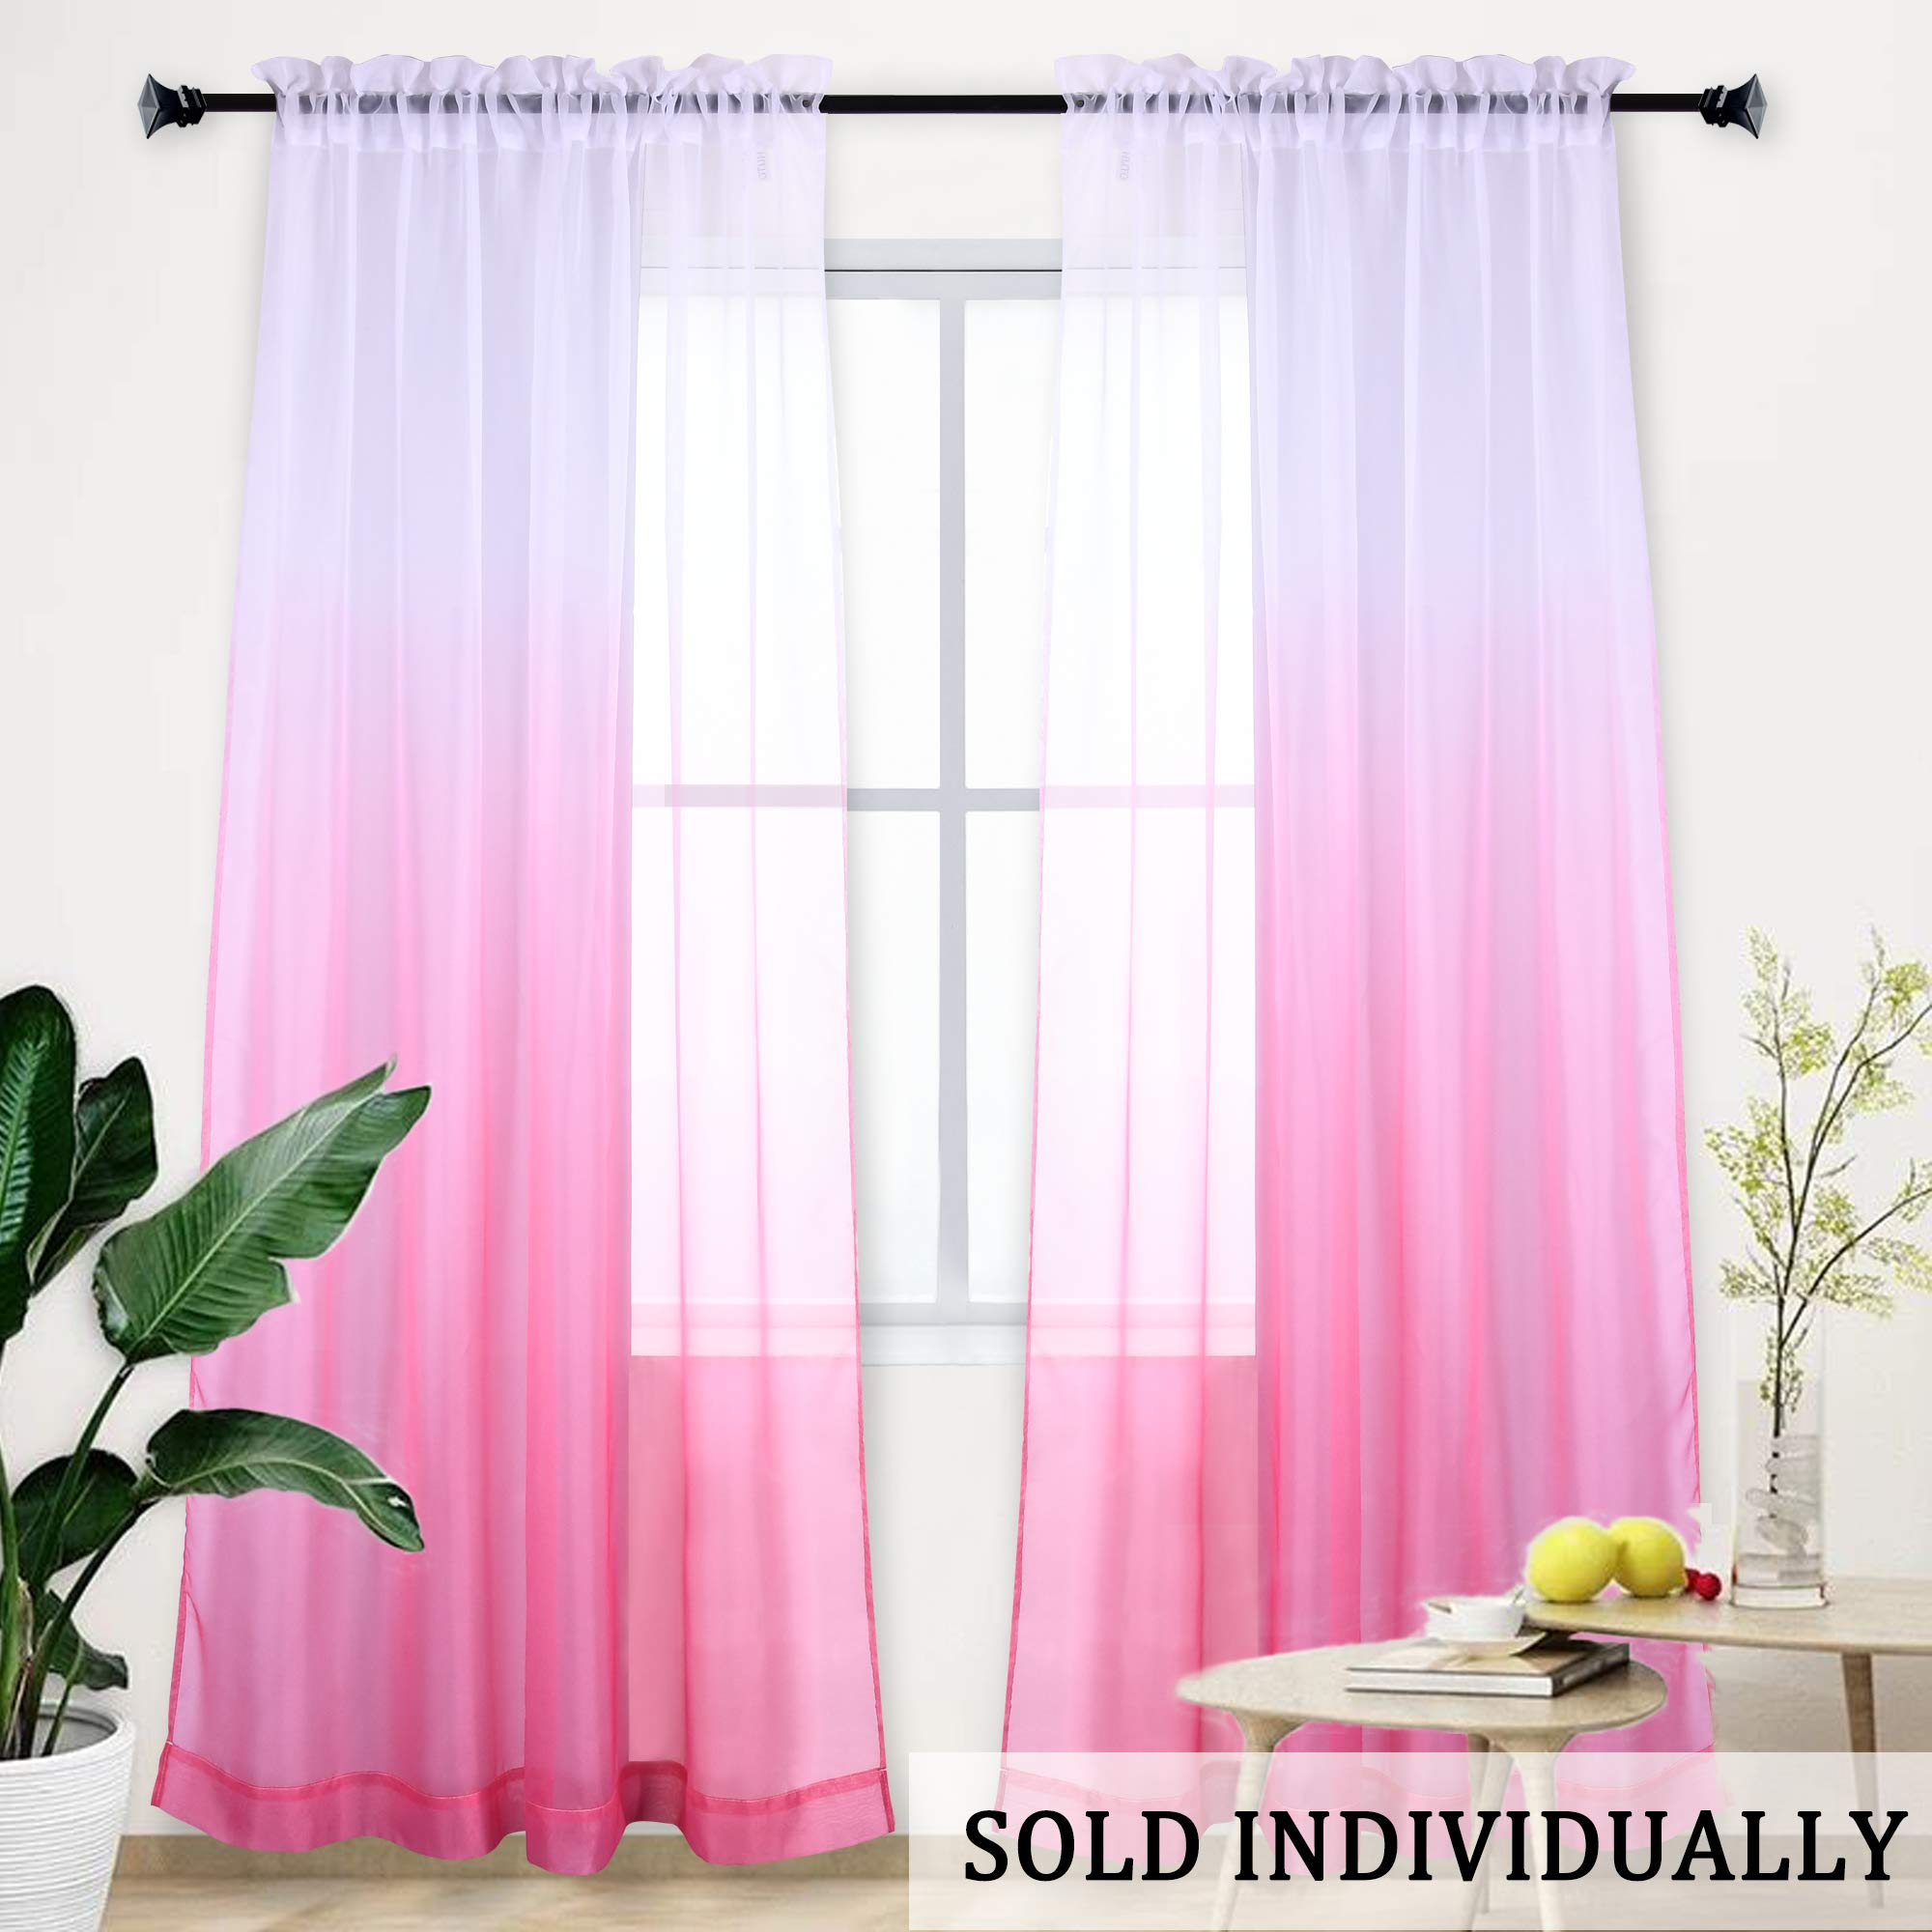 Pink Curtains Ombre Sheer Curtains Teena Buy Online In Isle Of Man At Desertcart